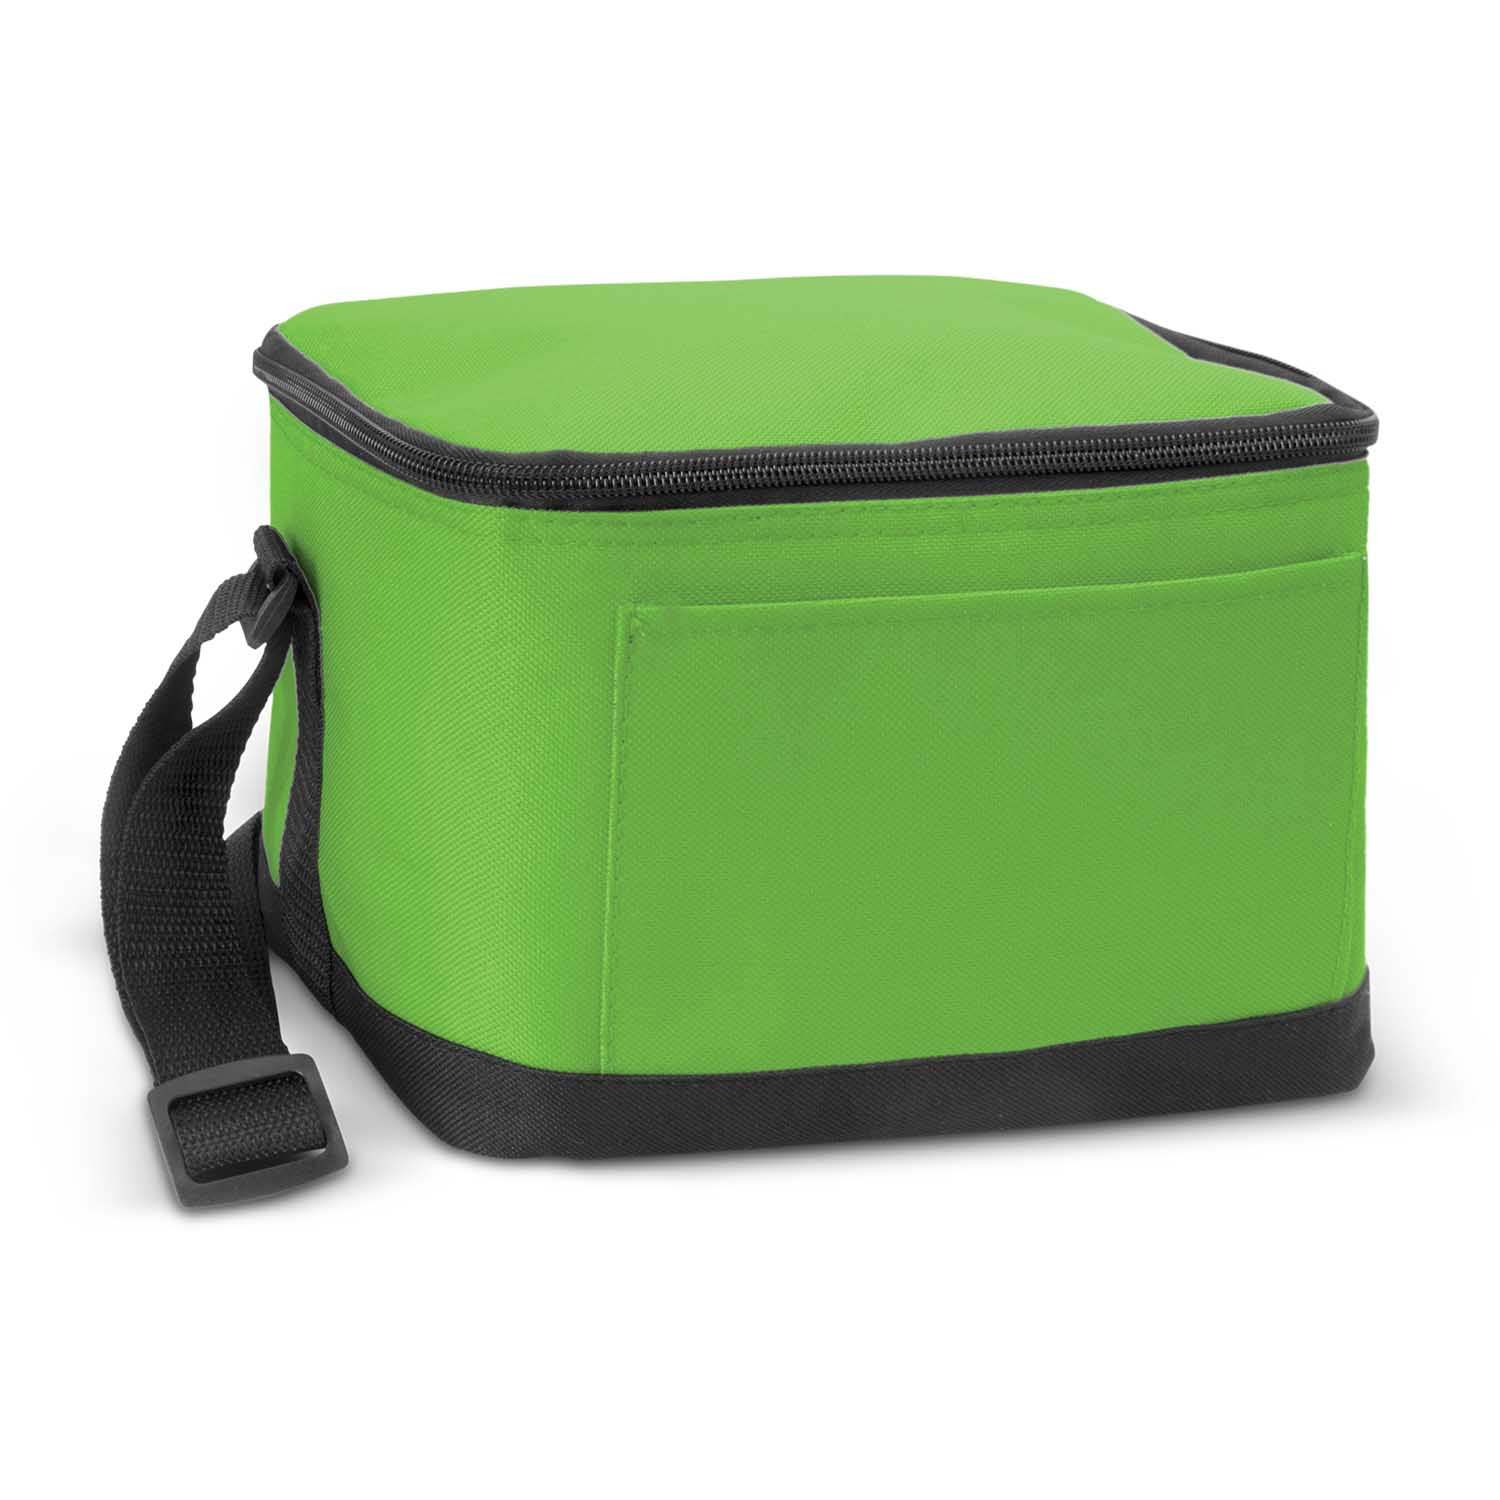 Get Green Bathurst Cooler Bags Online in Perth